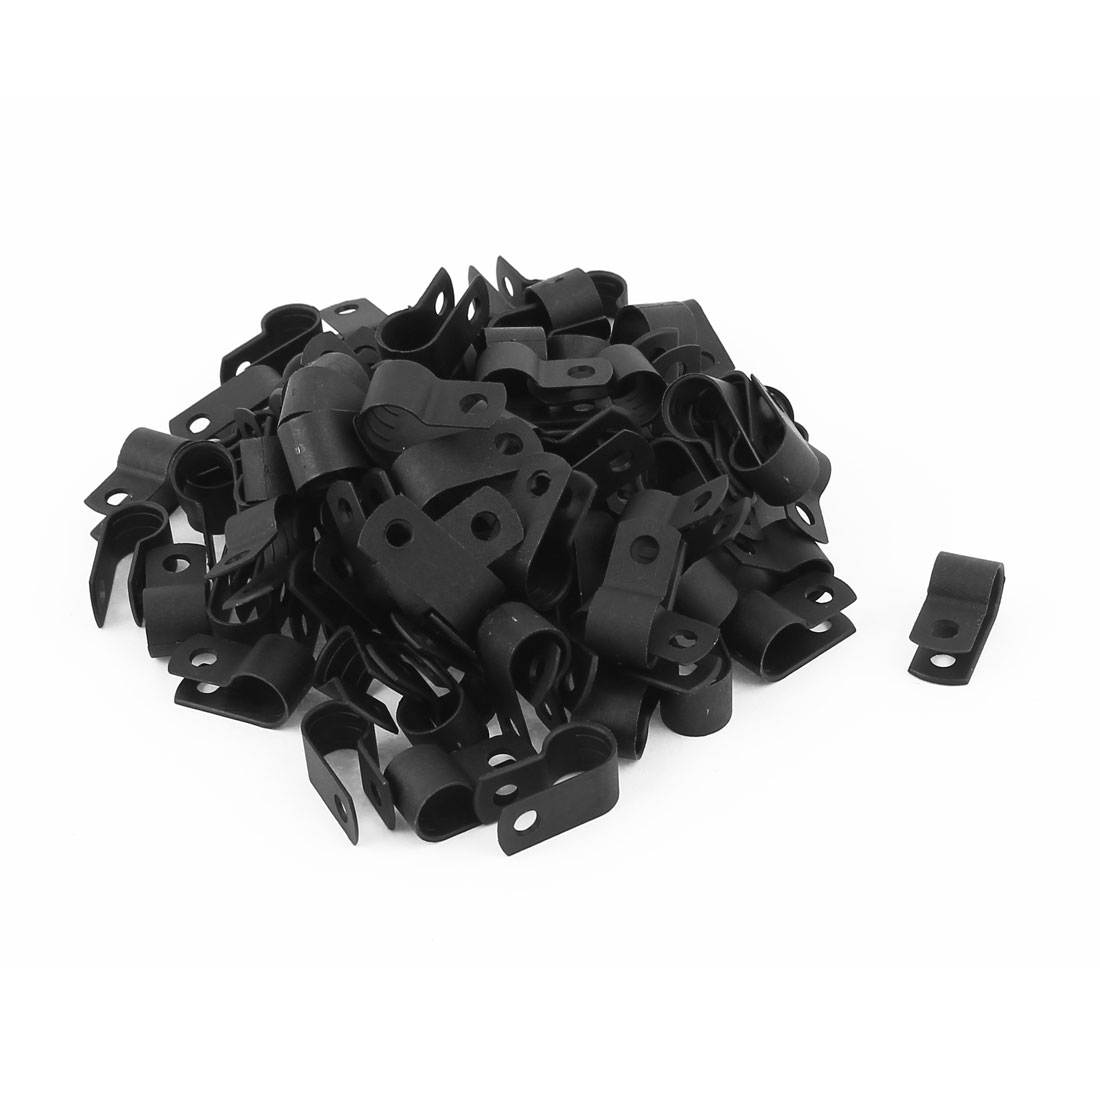 100 Pcs Black Plastic Cable Cord Clamp Clip Tie Organizer Management R Type 8.4